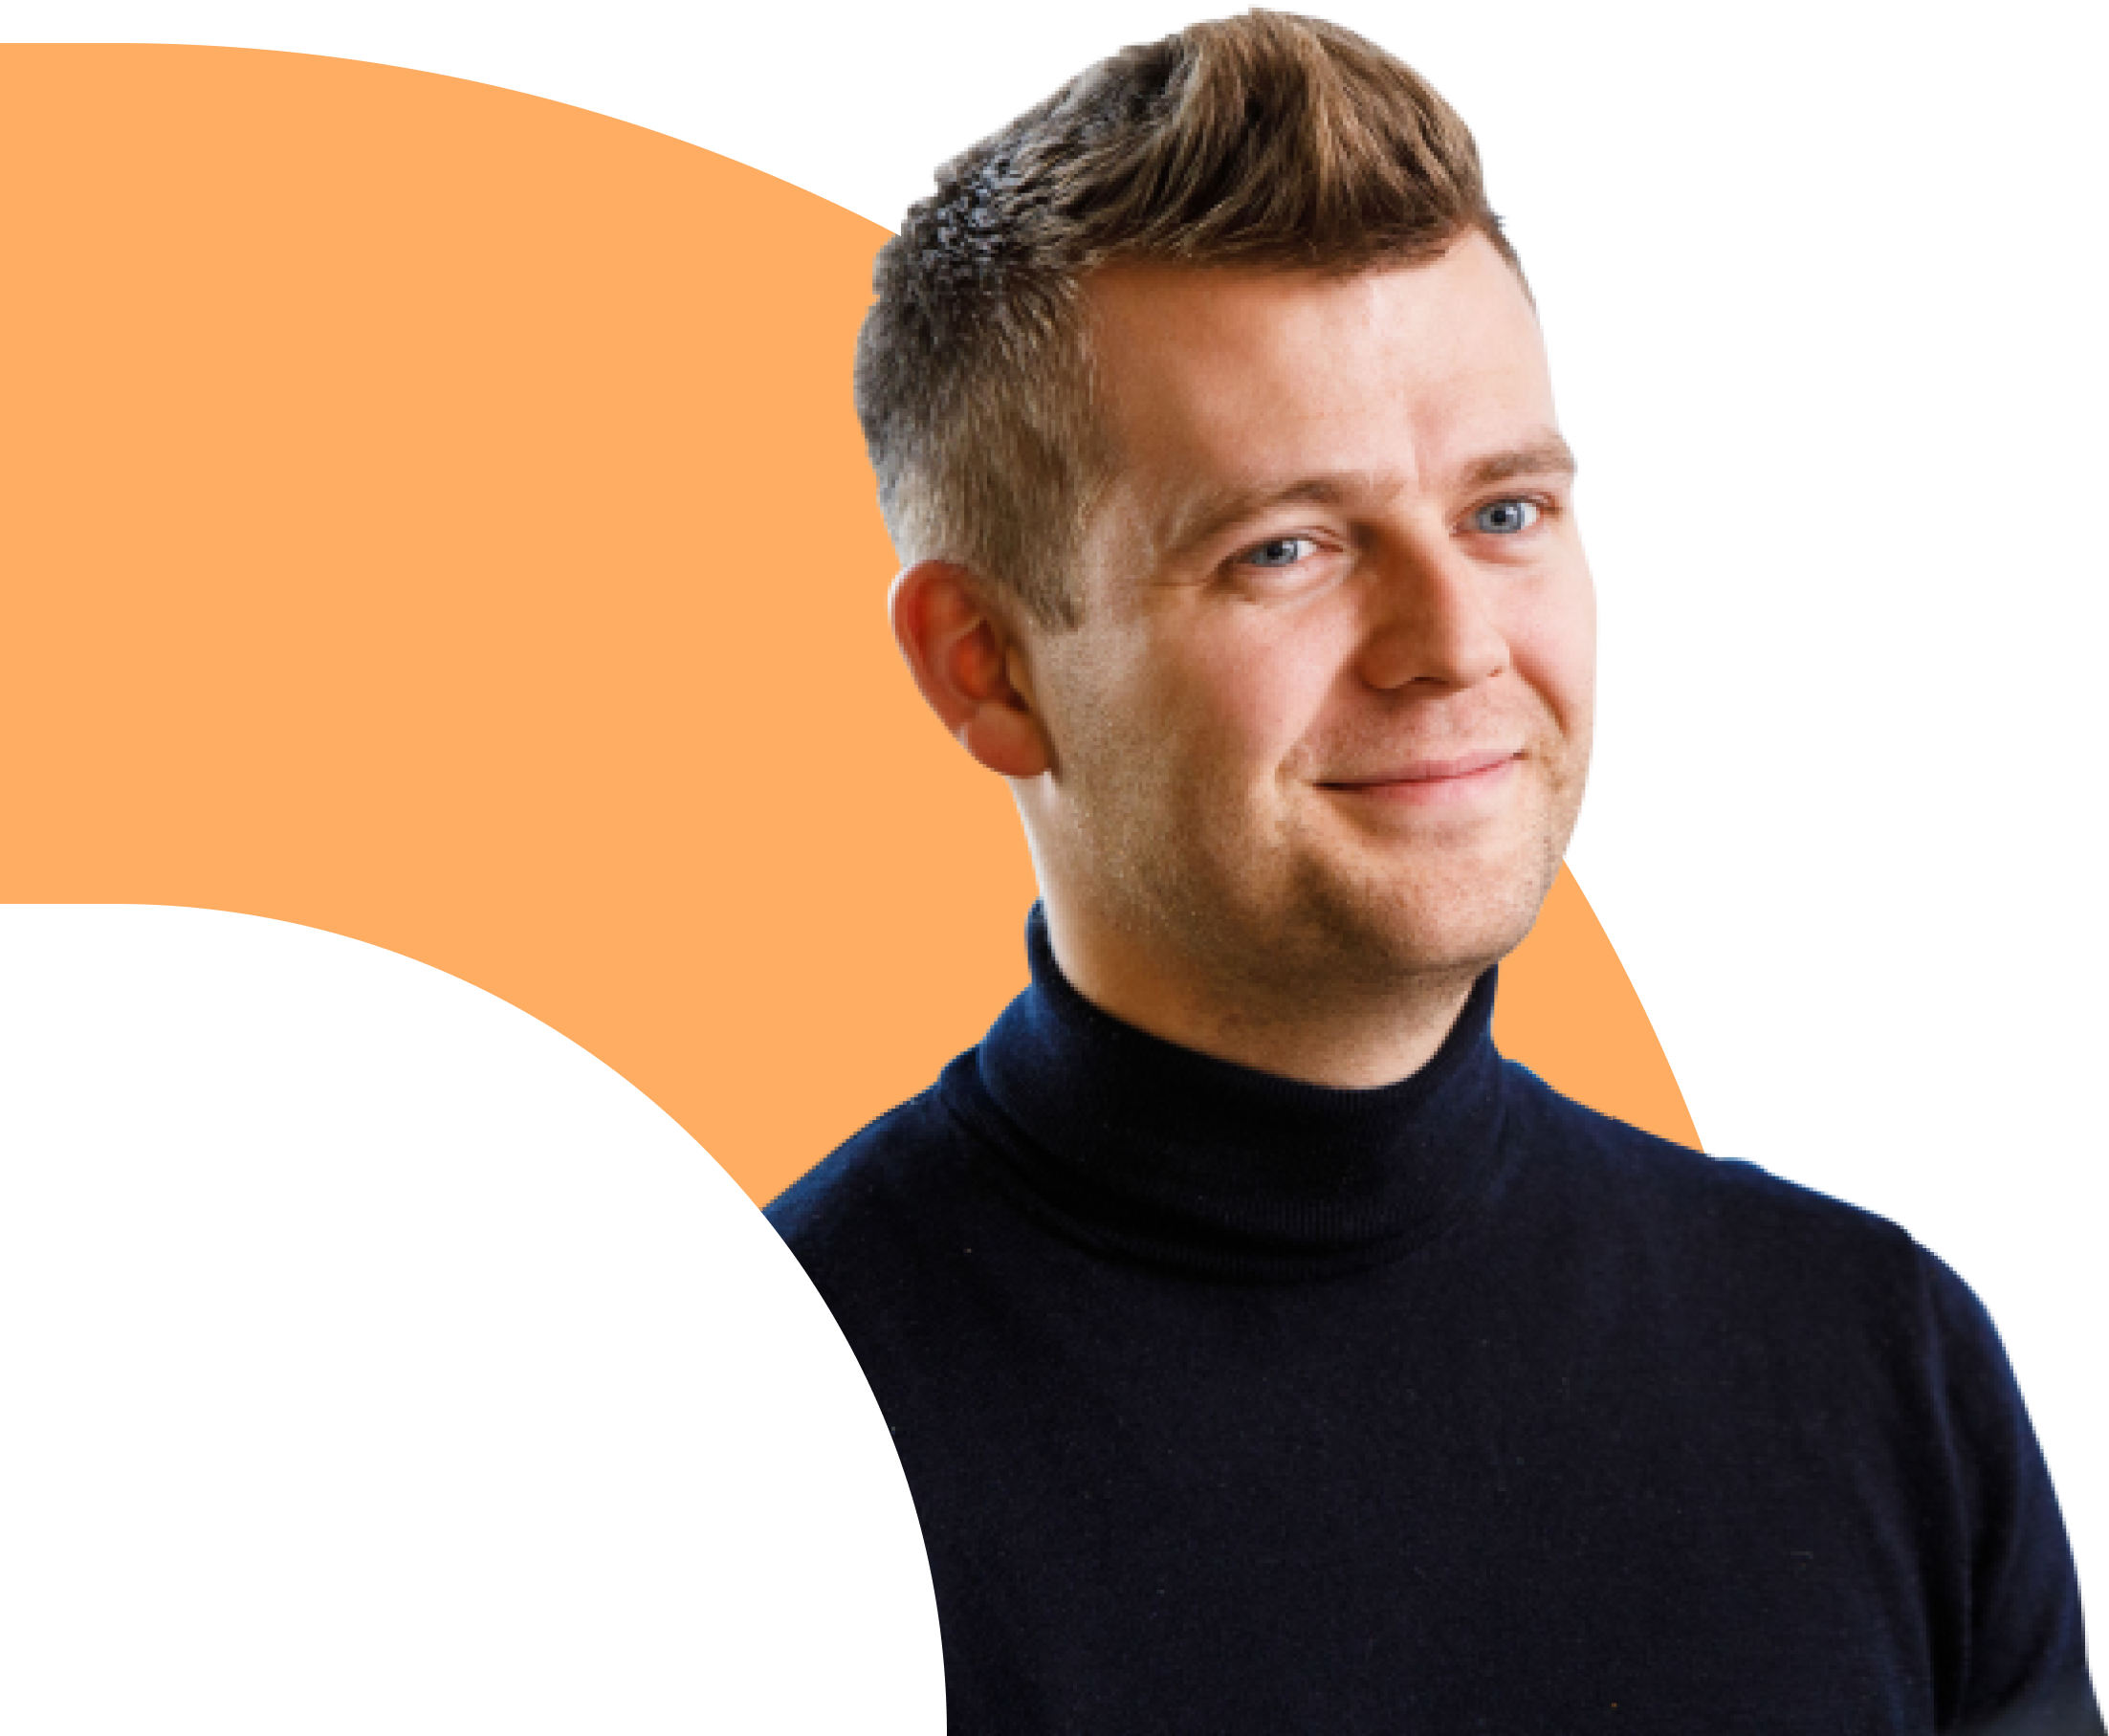 Albert Hauksson, Lead UX Designer and Design Team Lead at Meniga